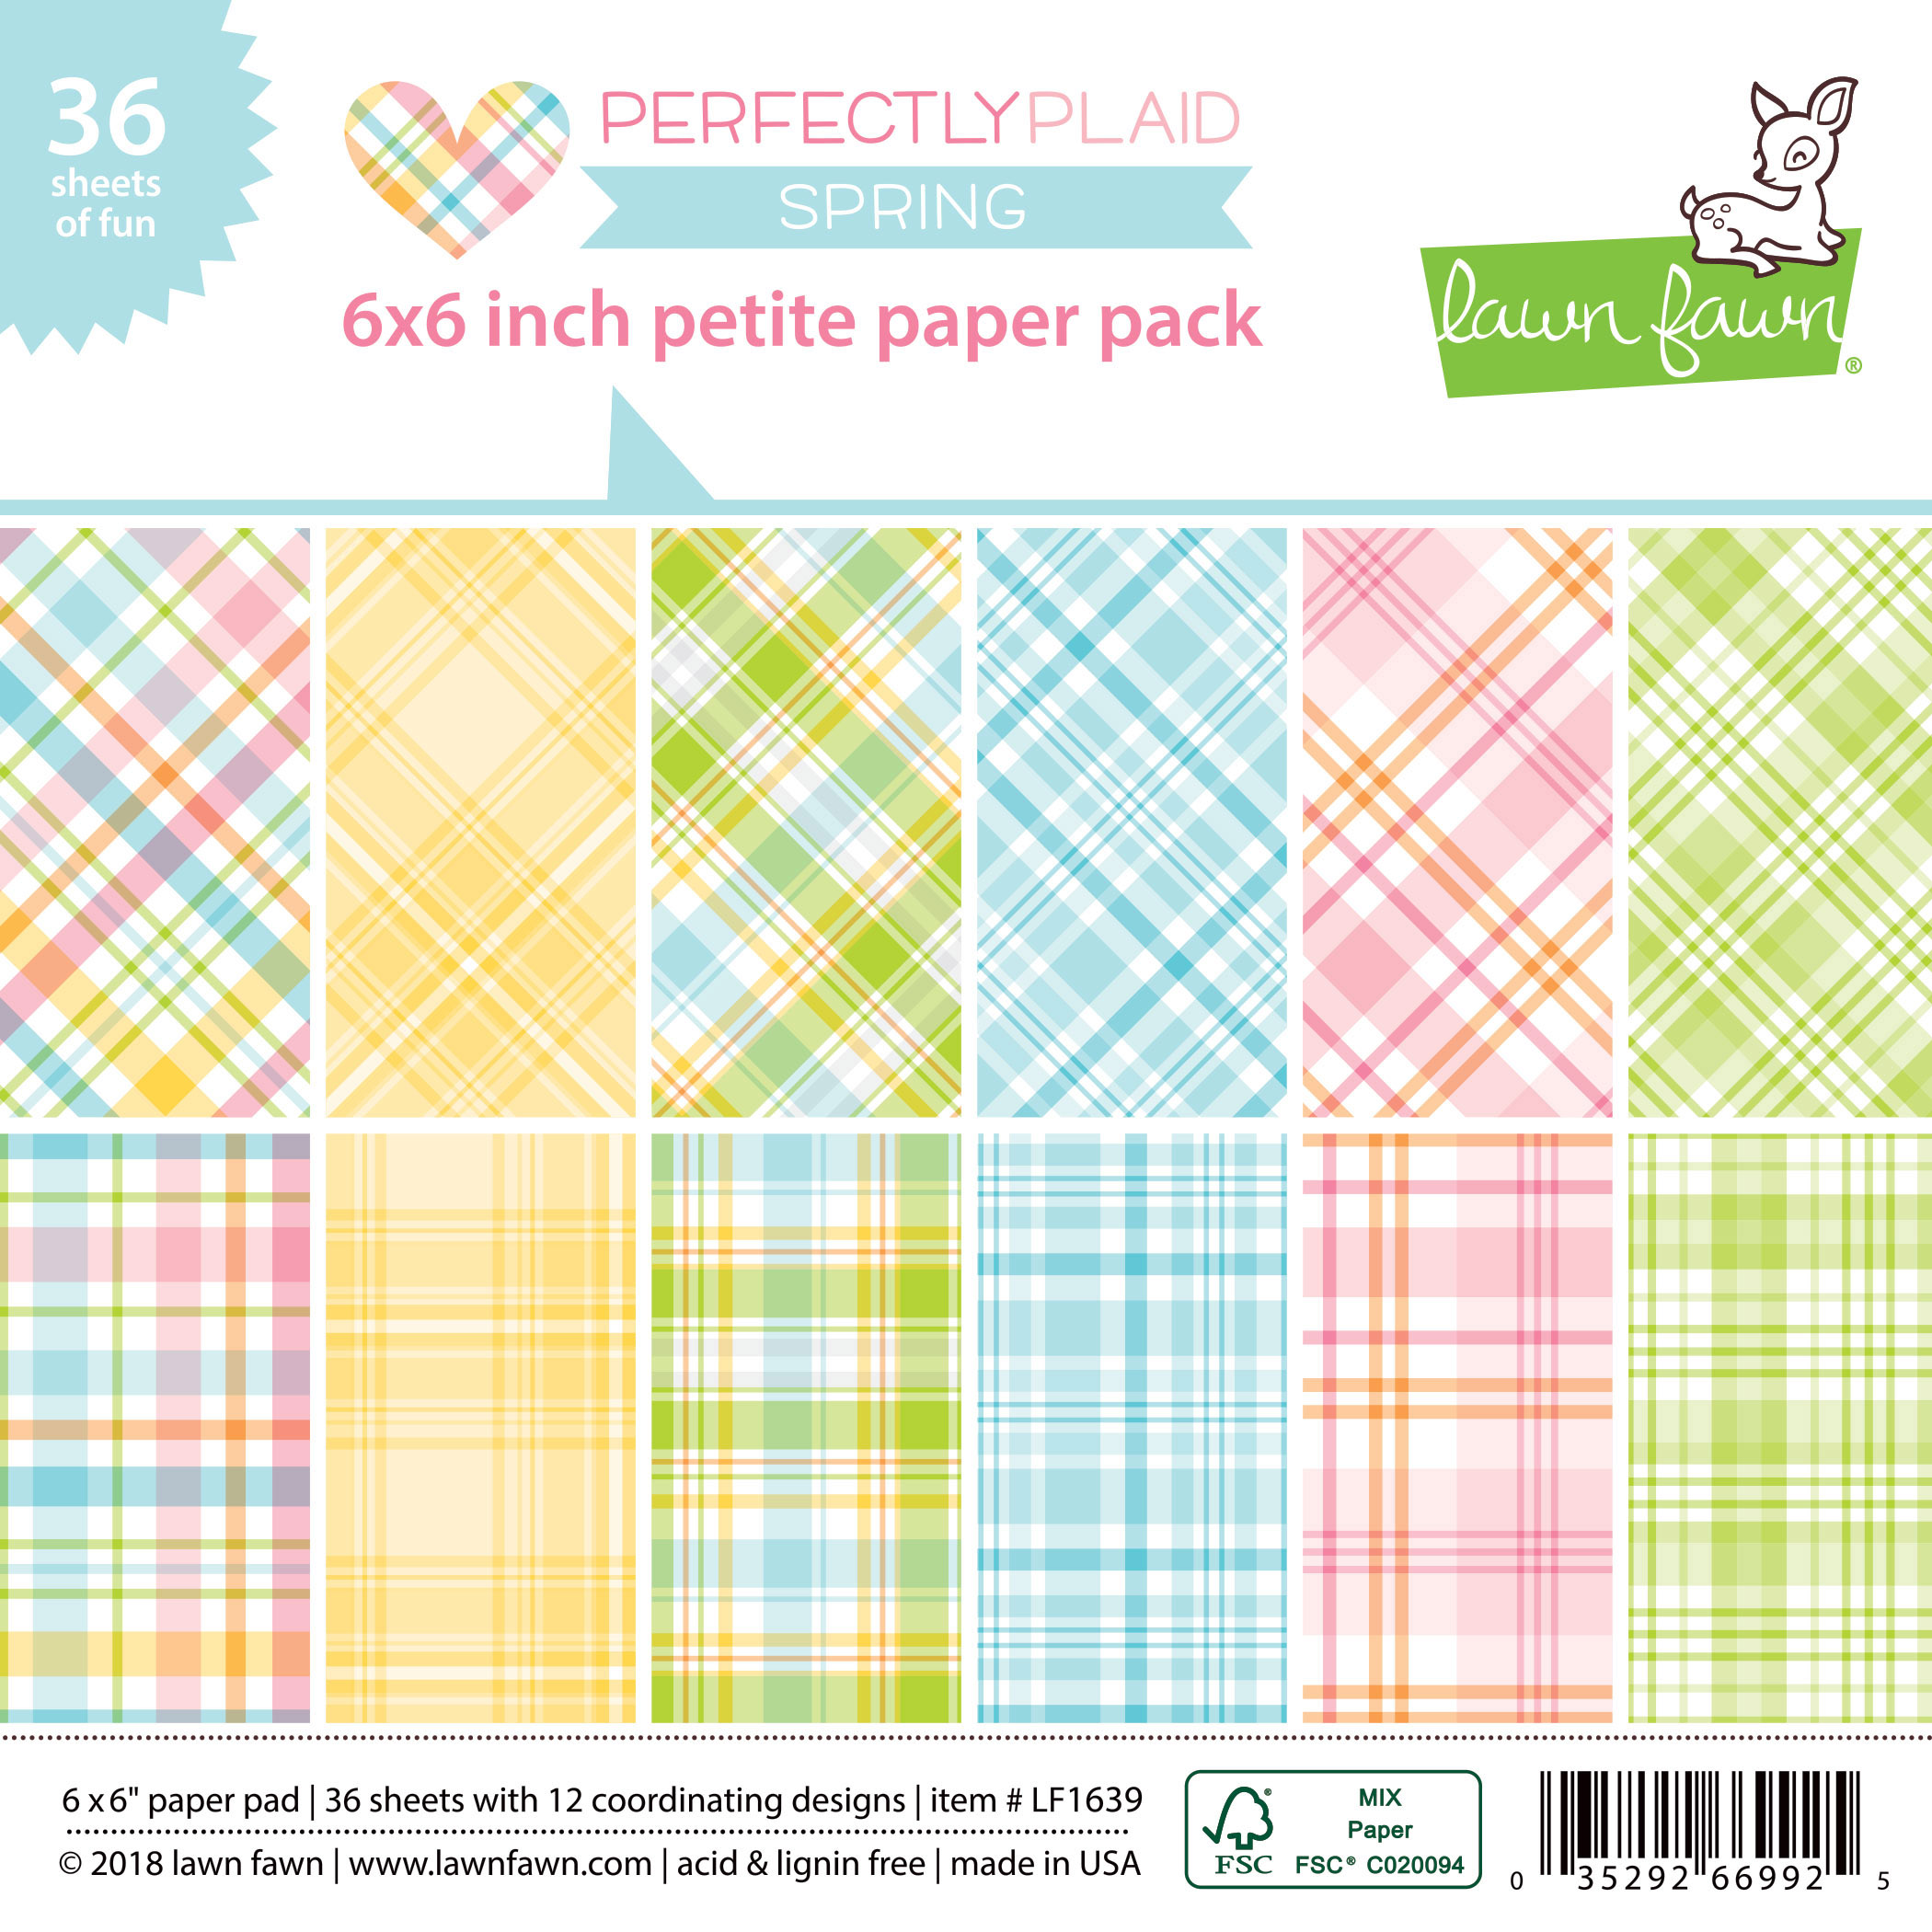 *NEW* - Lawn Fawn - perfectly plaid spring petite paper pack